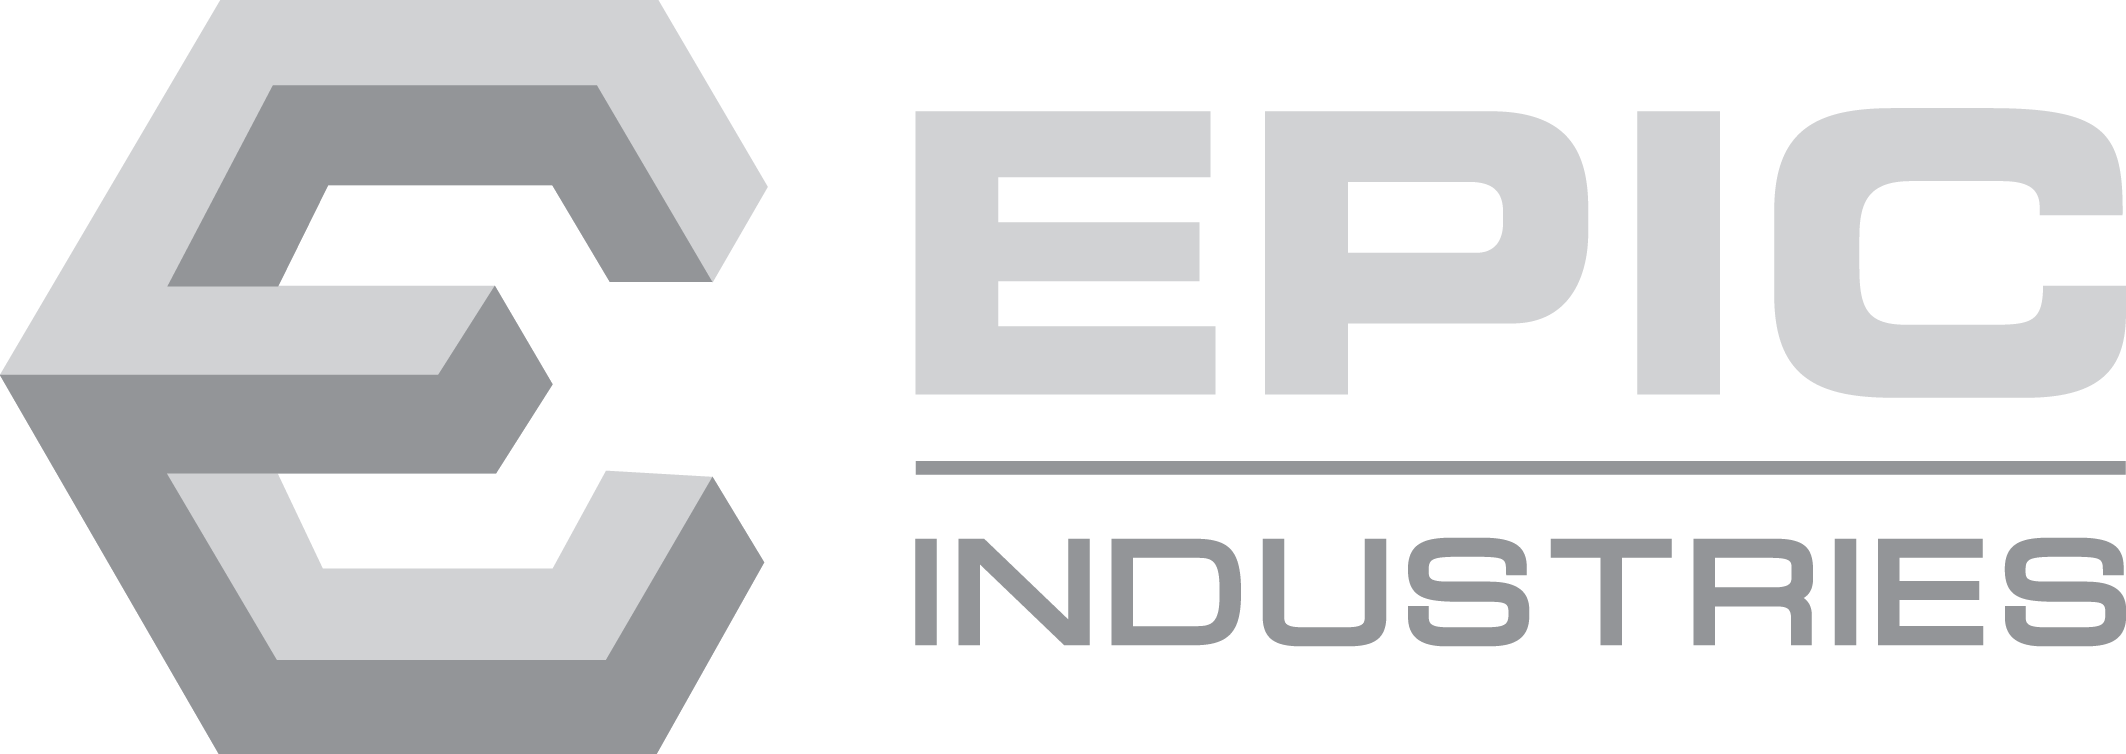 epic industries logo